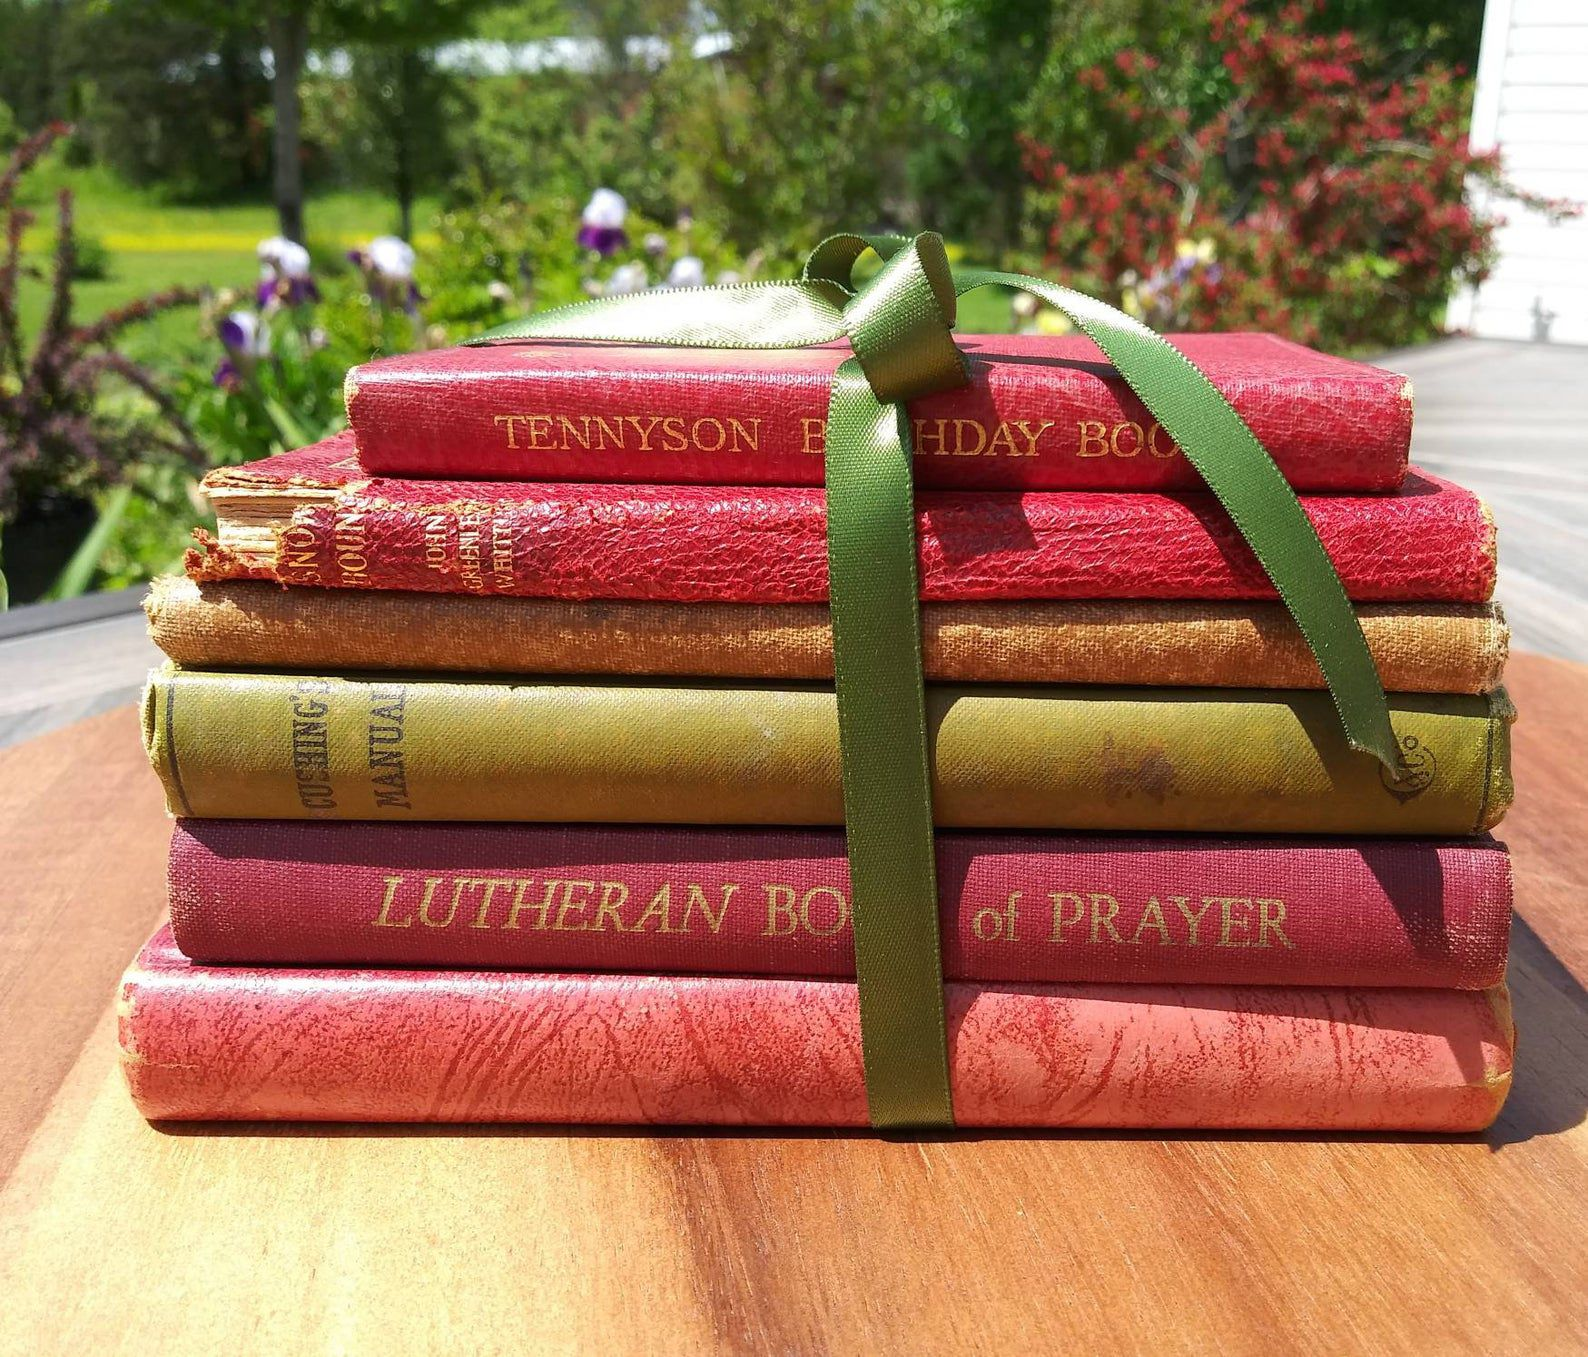 Image of a stack of red and yellow-green books.